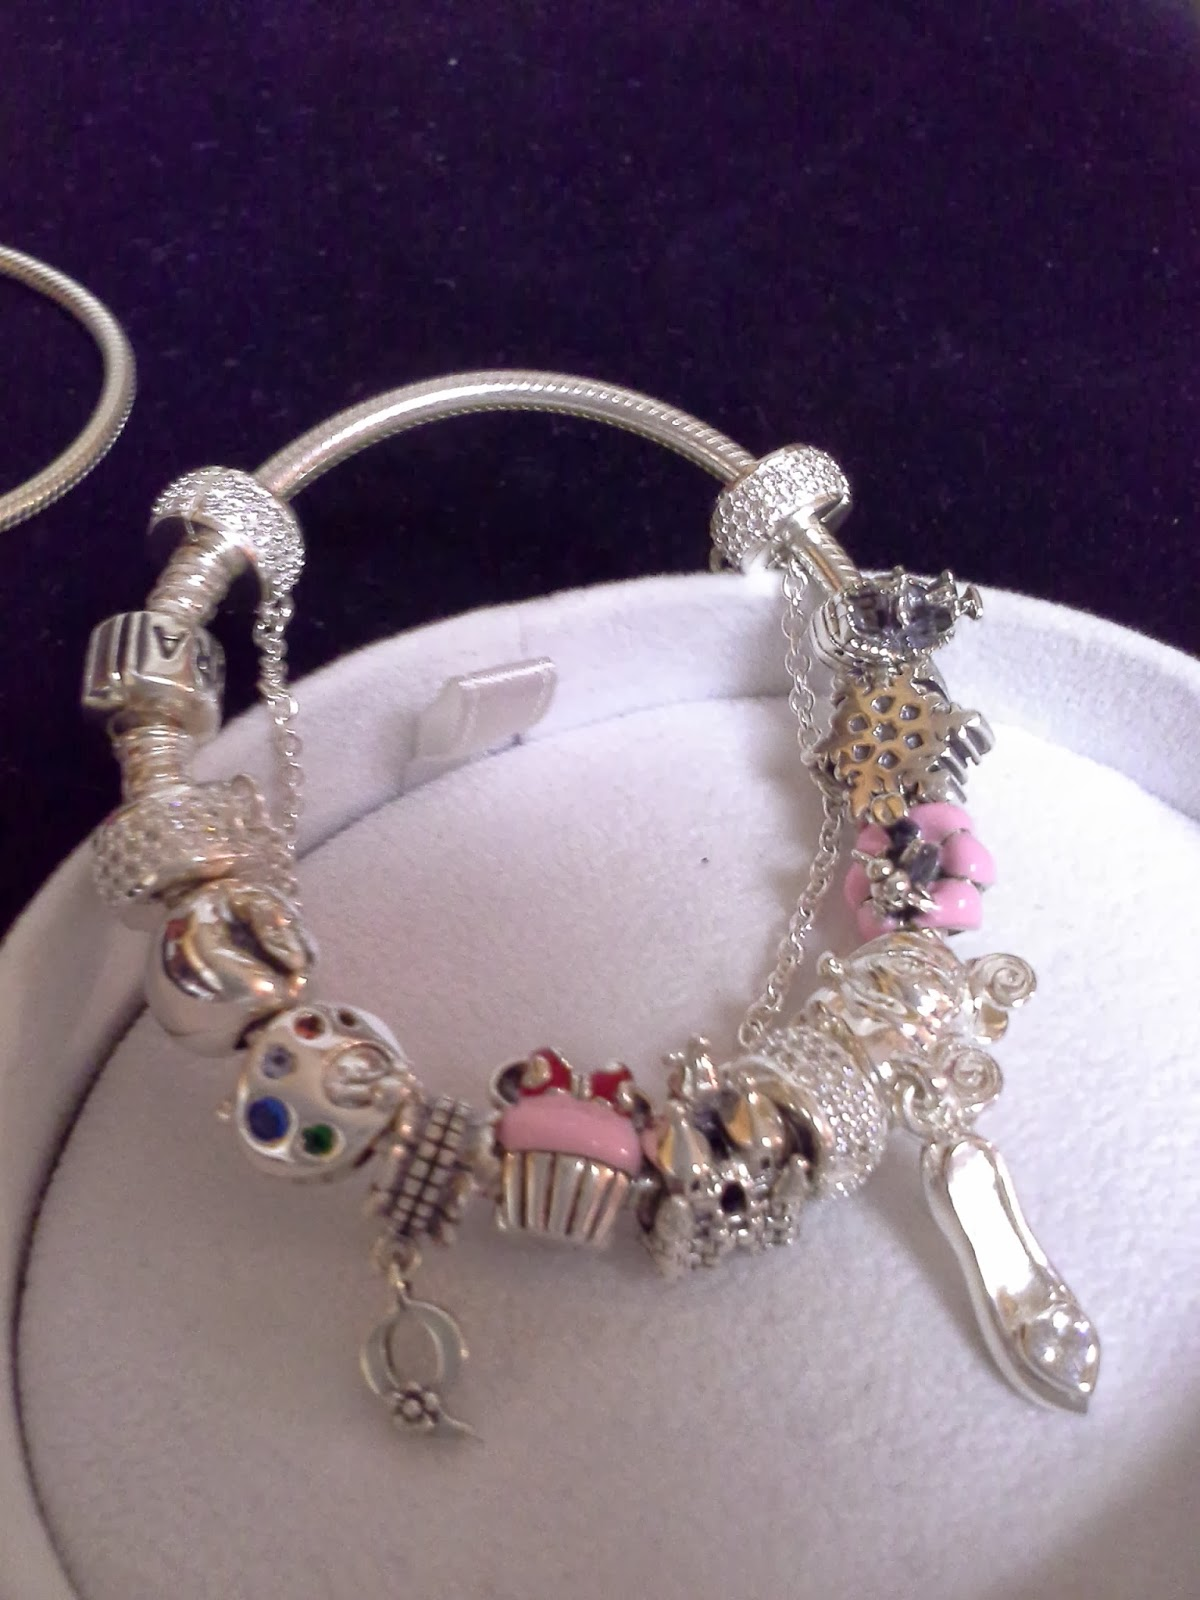 show bangles me bangle charms poll pandora your topic includes